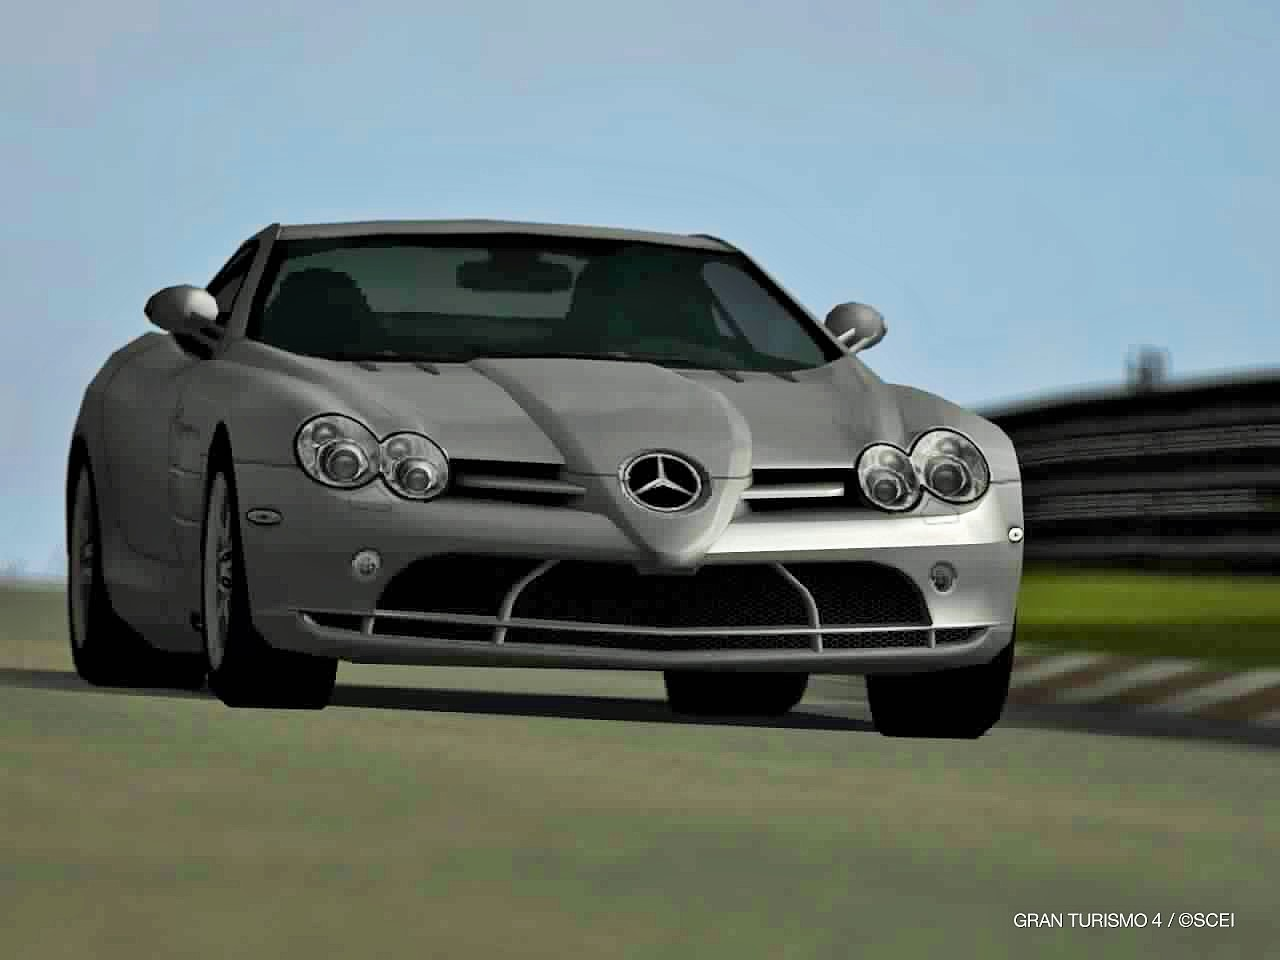 Todayu0027s Pictures Are Of The GT4 2003 Mercedes Benz SLR McLaren.